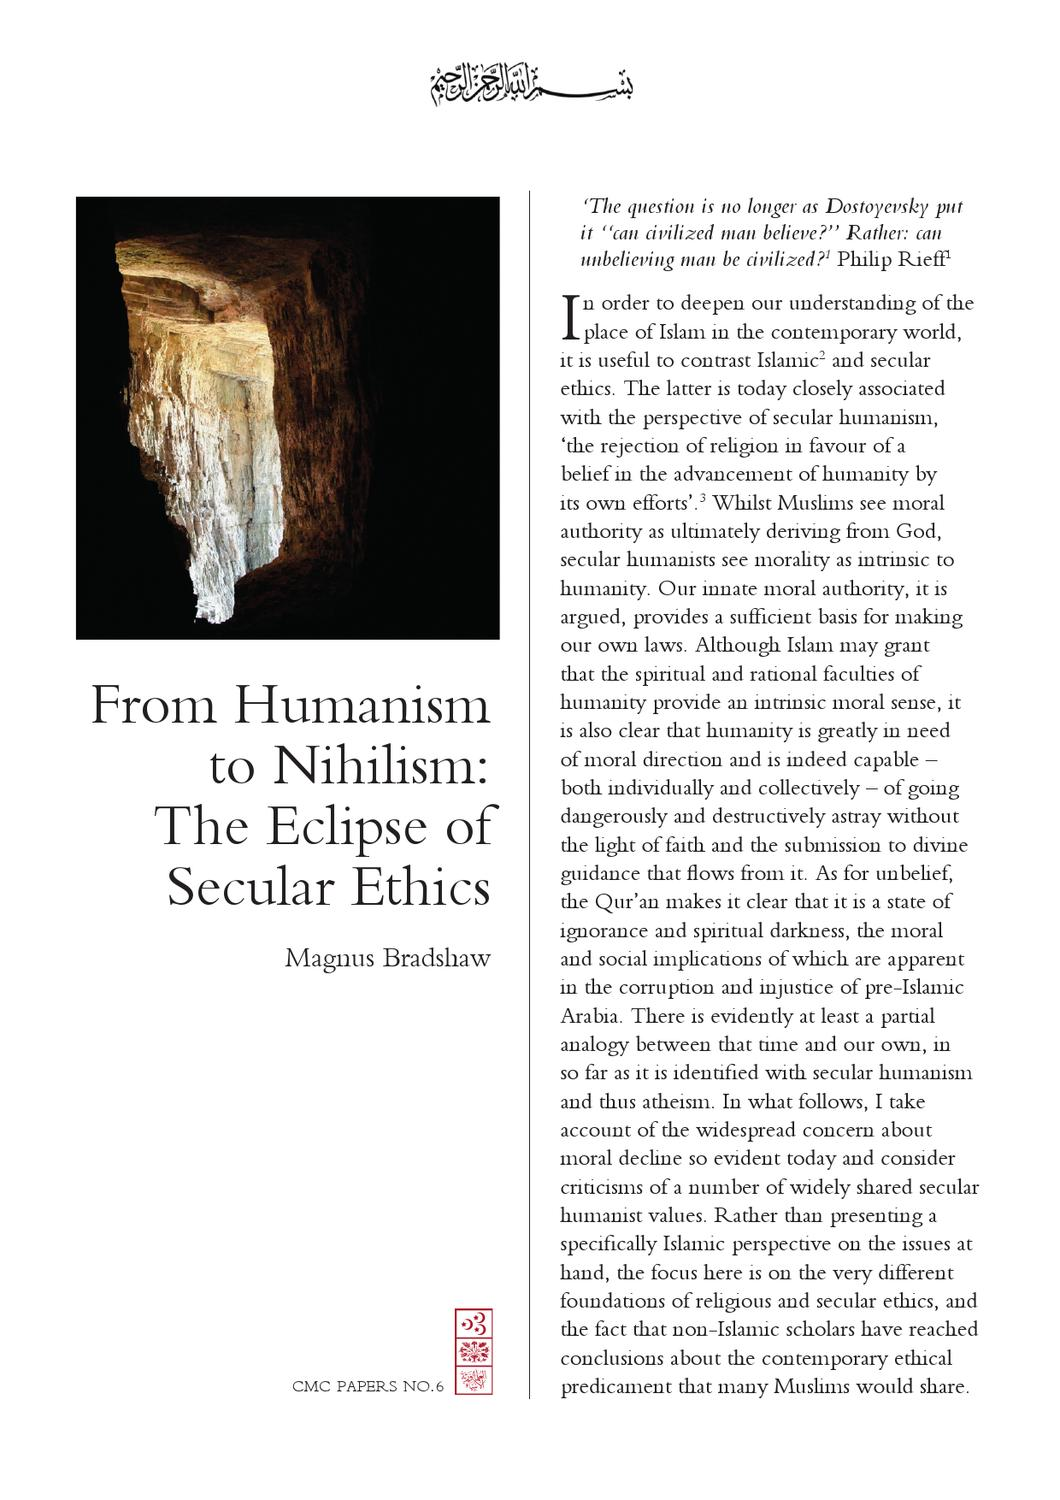 essays on secular humanism Secular humanism 1 summarize the worldview by using the main categories of belief discussed in the assigned course reading (see groothuis chapter 4 for some of the main categories of belief: ultimate reality, source of authority, human beings, source of morality, etc.